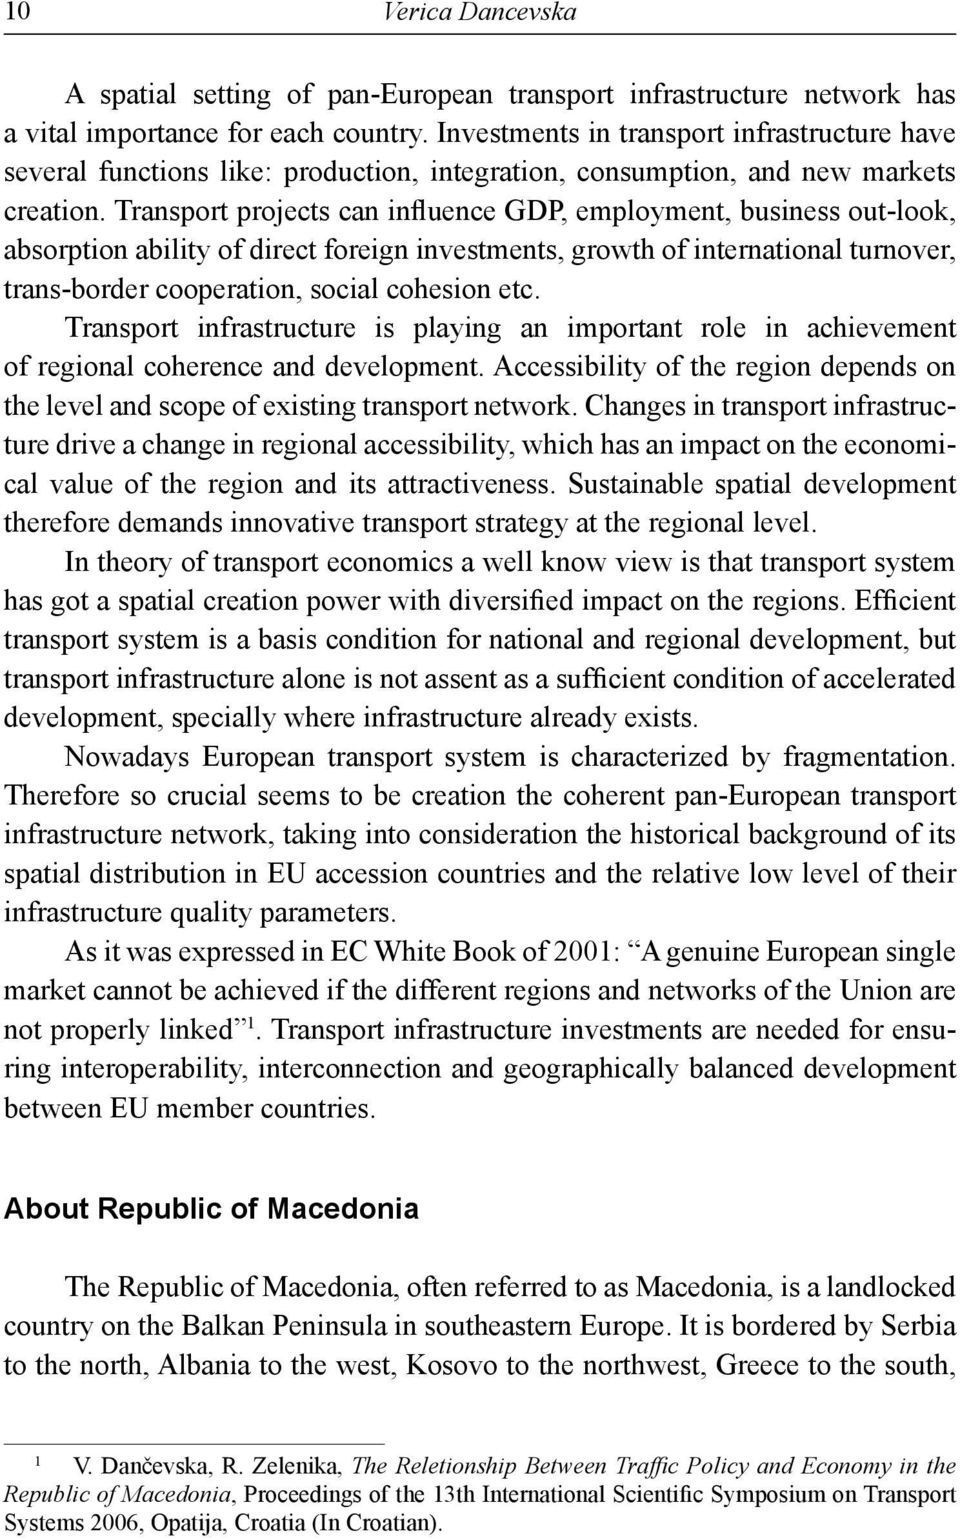 Transport projects can influence GDP, employment, business out-look, absorption ability of direct foreign investments, growth of international turnover, trans-border cooperation, social cohesion etc.